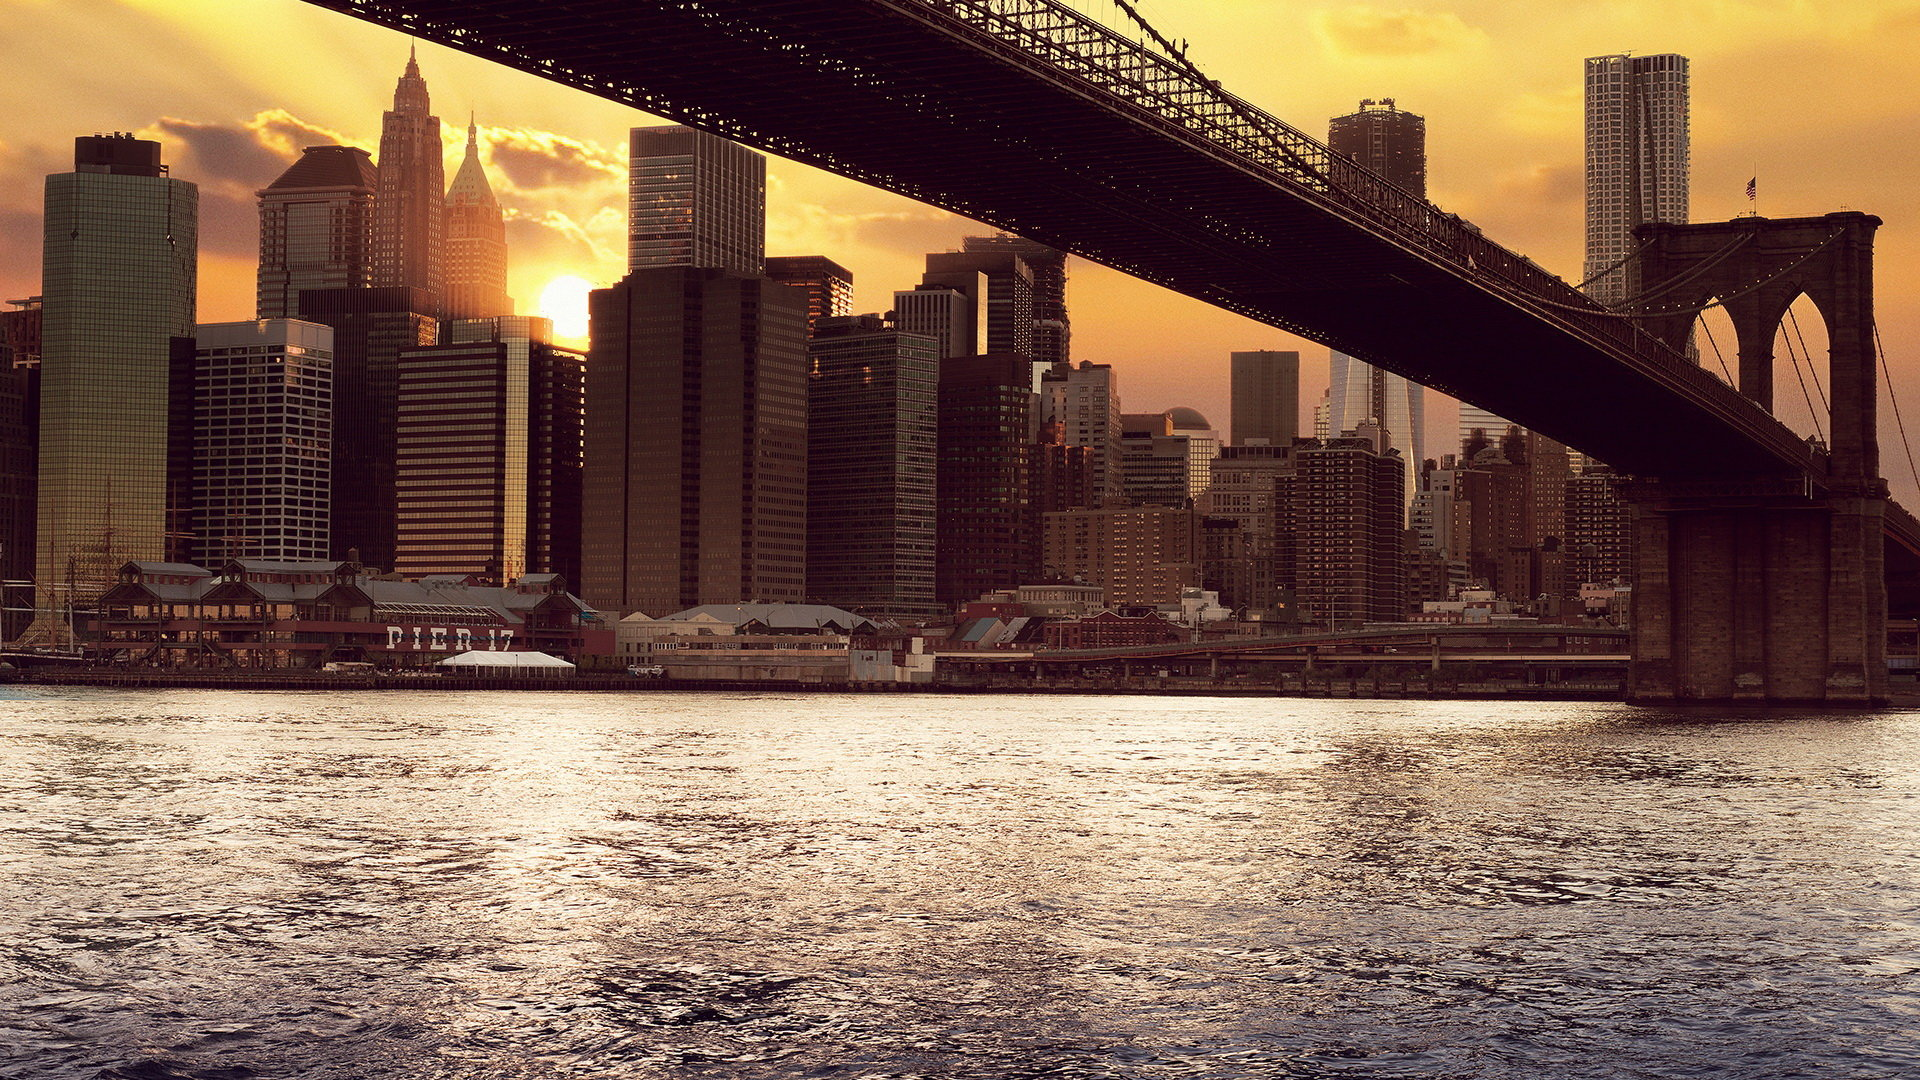 Awesome New York Free Wallpaper Id 486036 For Full Hd 1080p Desktop